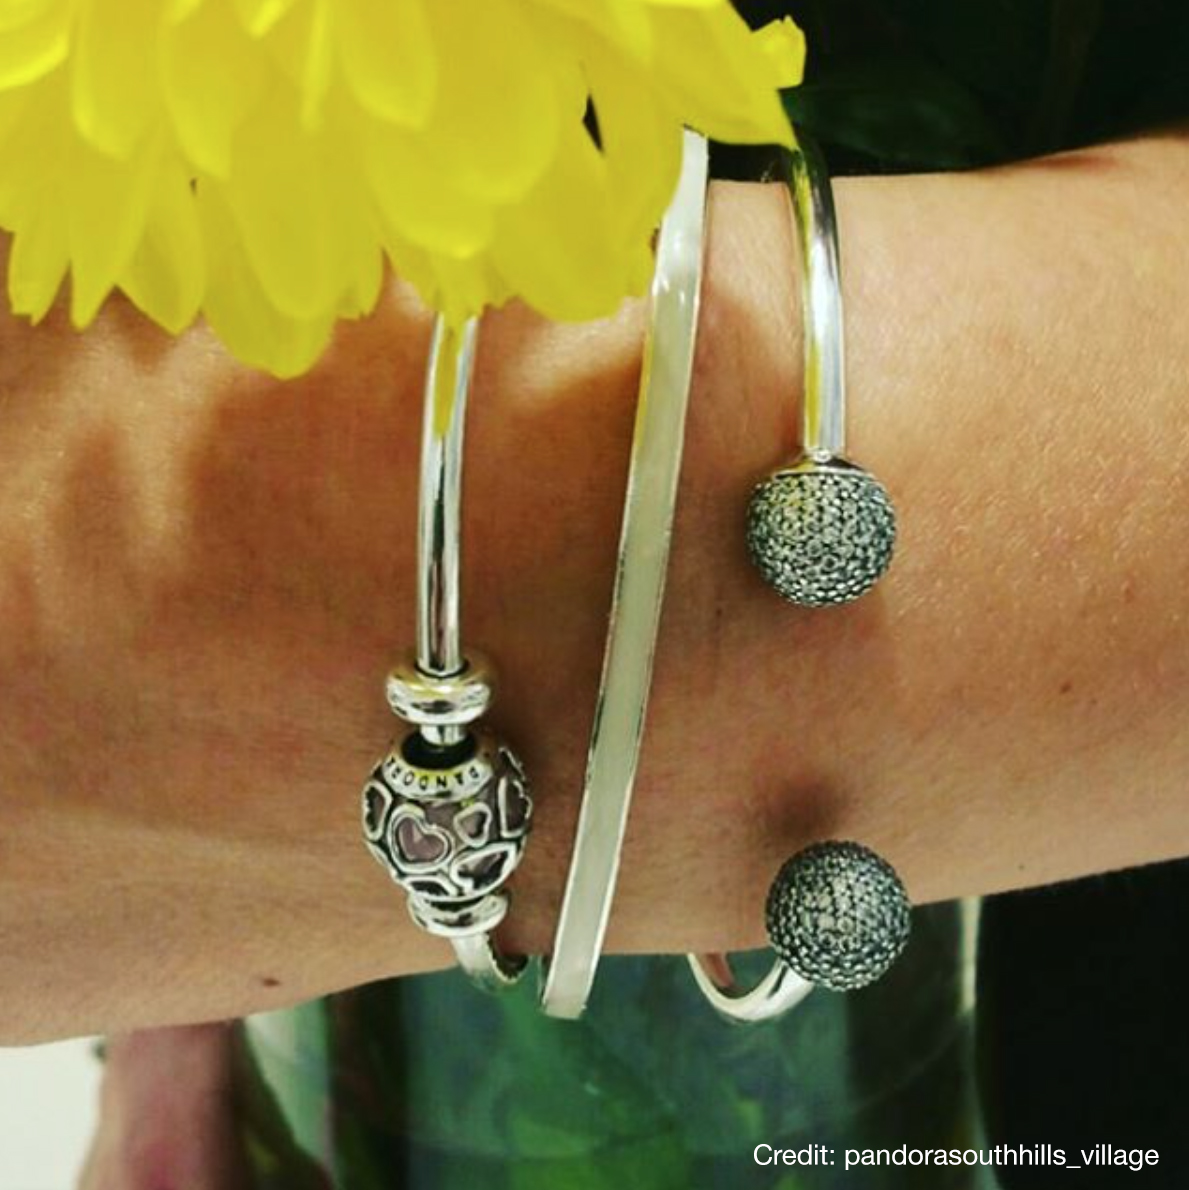 a1f942b7e PANDORA OPEN BANGLES ARE RELEASED! UPDATED - The Art of Pandora ...